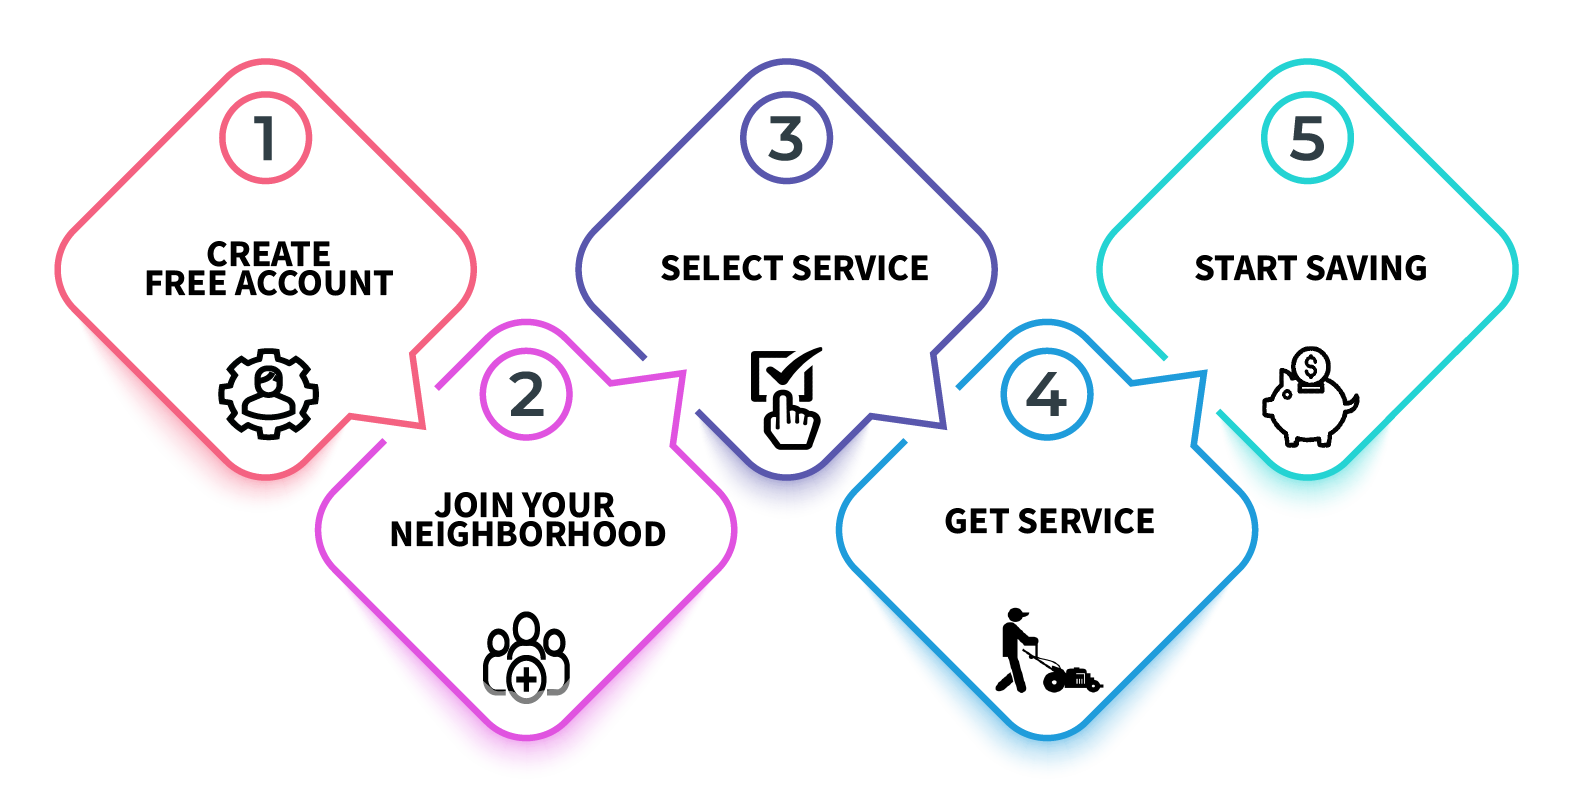 Create your free account, join your neighborhood, select service, get service, and start saving!